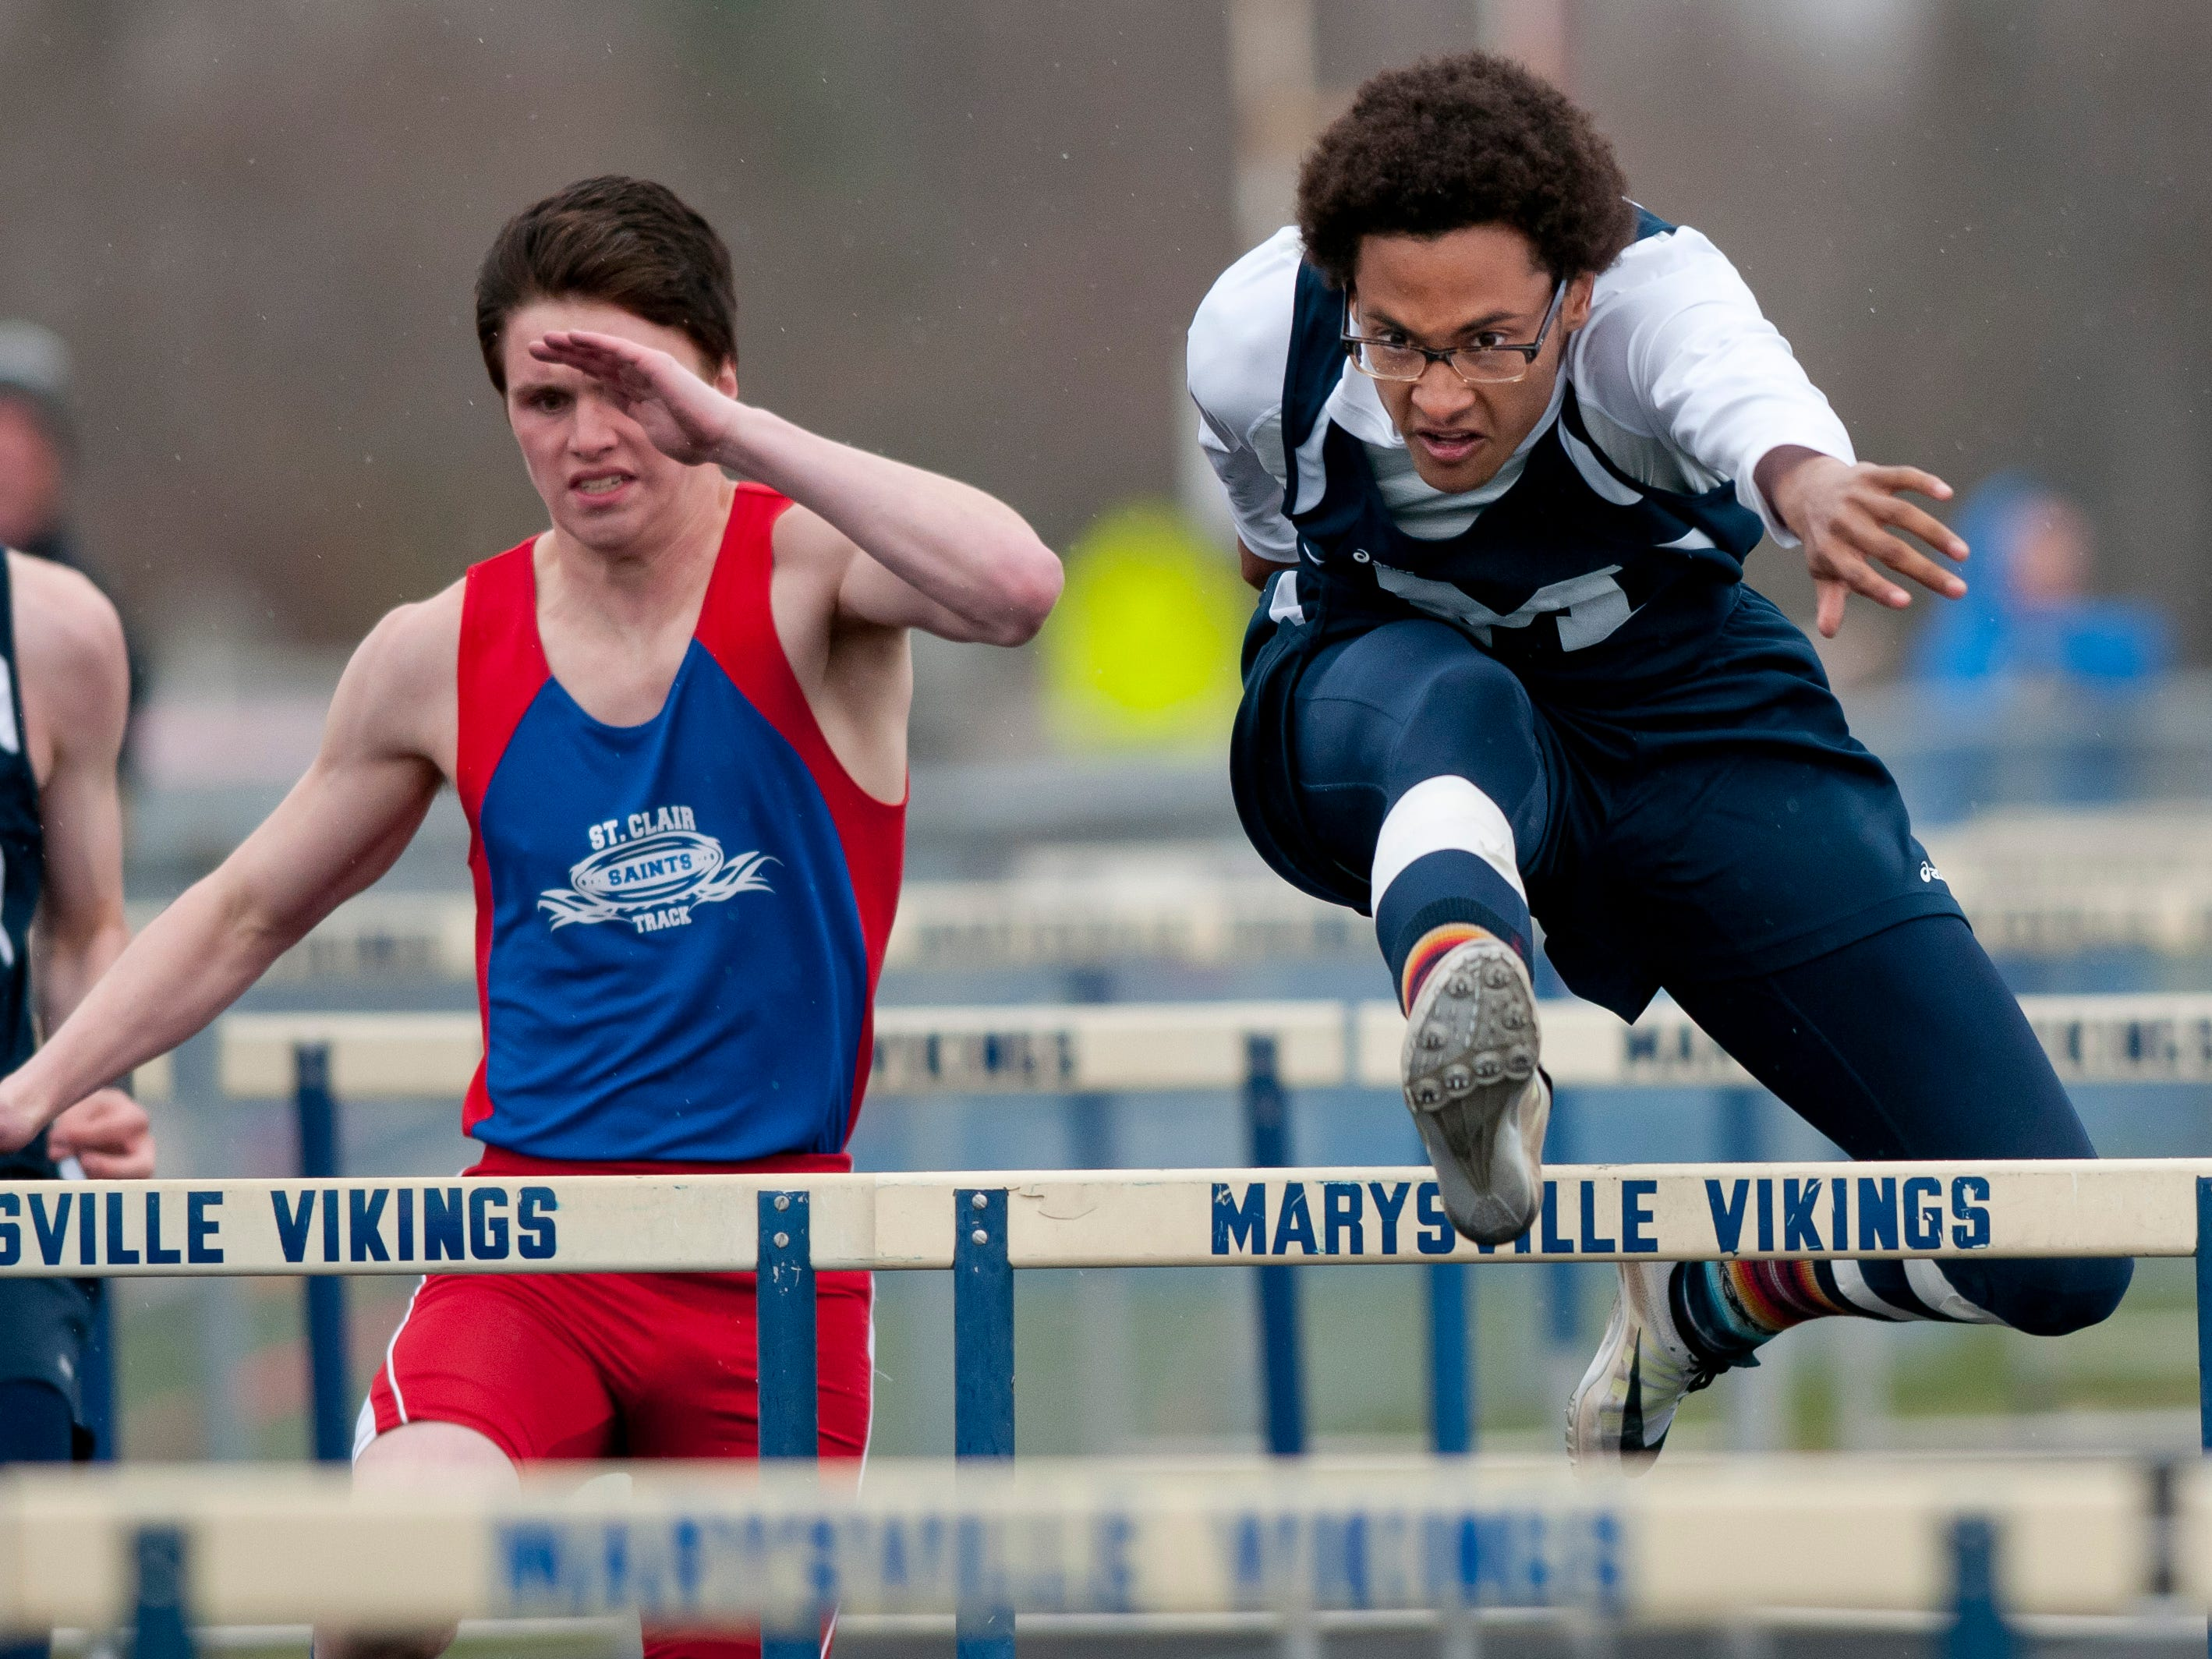 Marysville senior Dylan Pankow and St. Clair senior Nathan Roberts compete in the hurdles during a track meet Thursday, April 30, 2015 at Marysville High School.